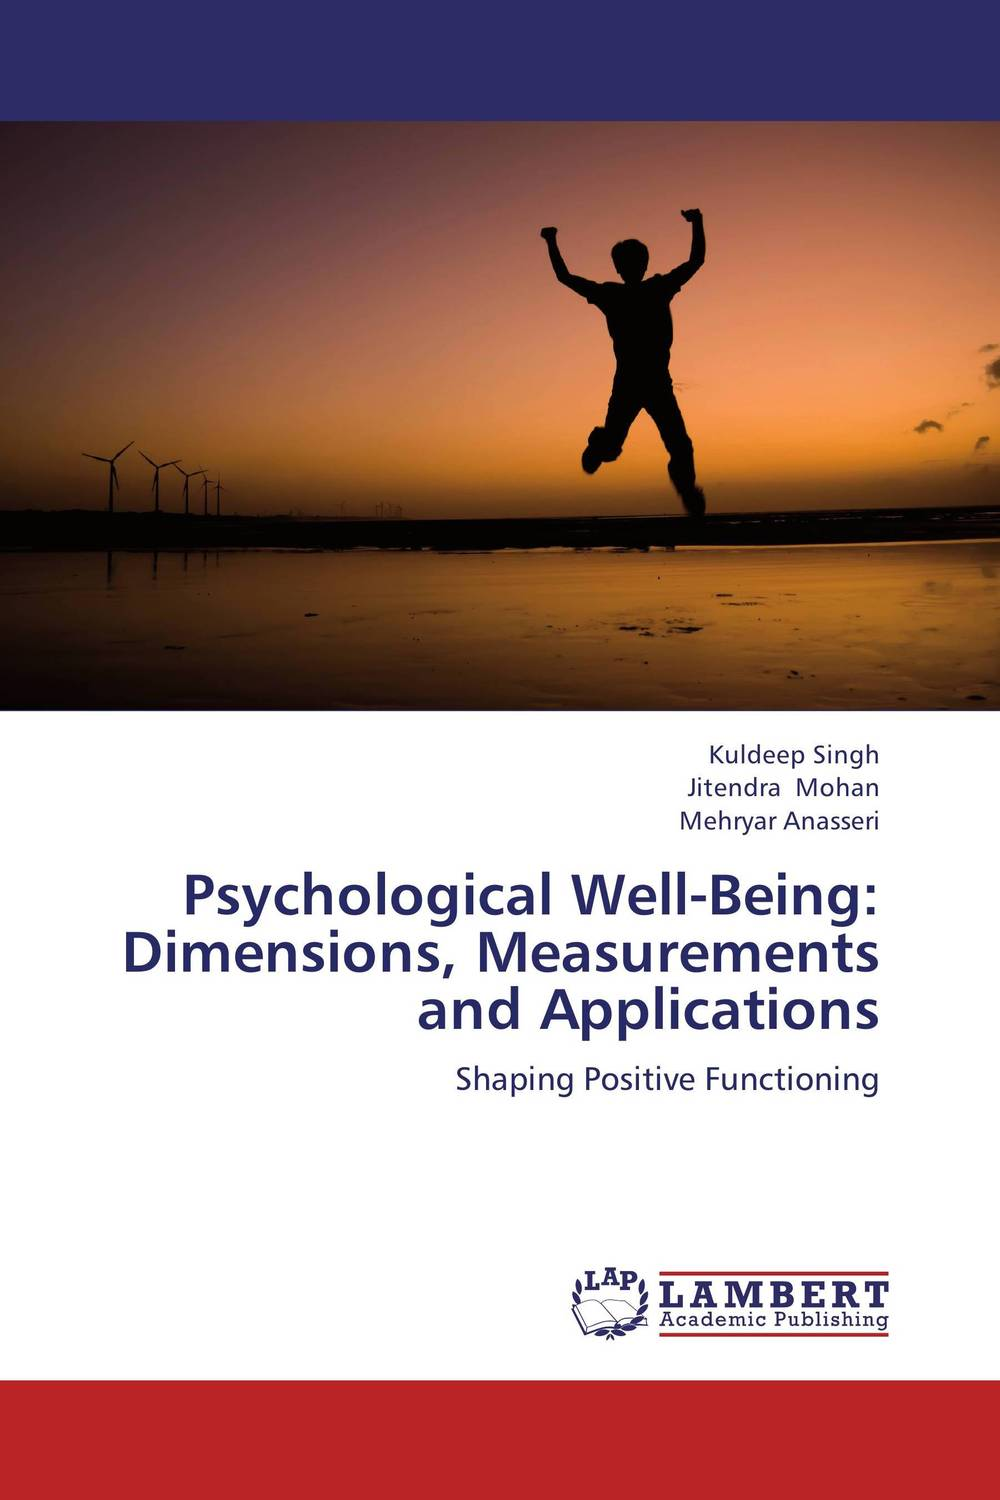 Psychological Well-Being: Dimensions, Measurements and Applications migration and well being an exploratory study of delhi's slums